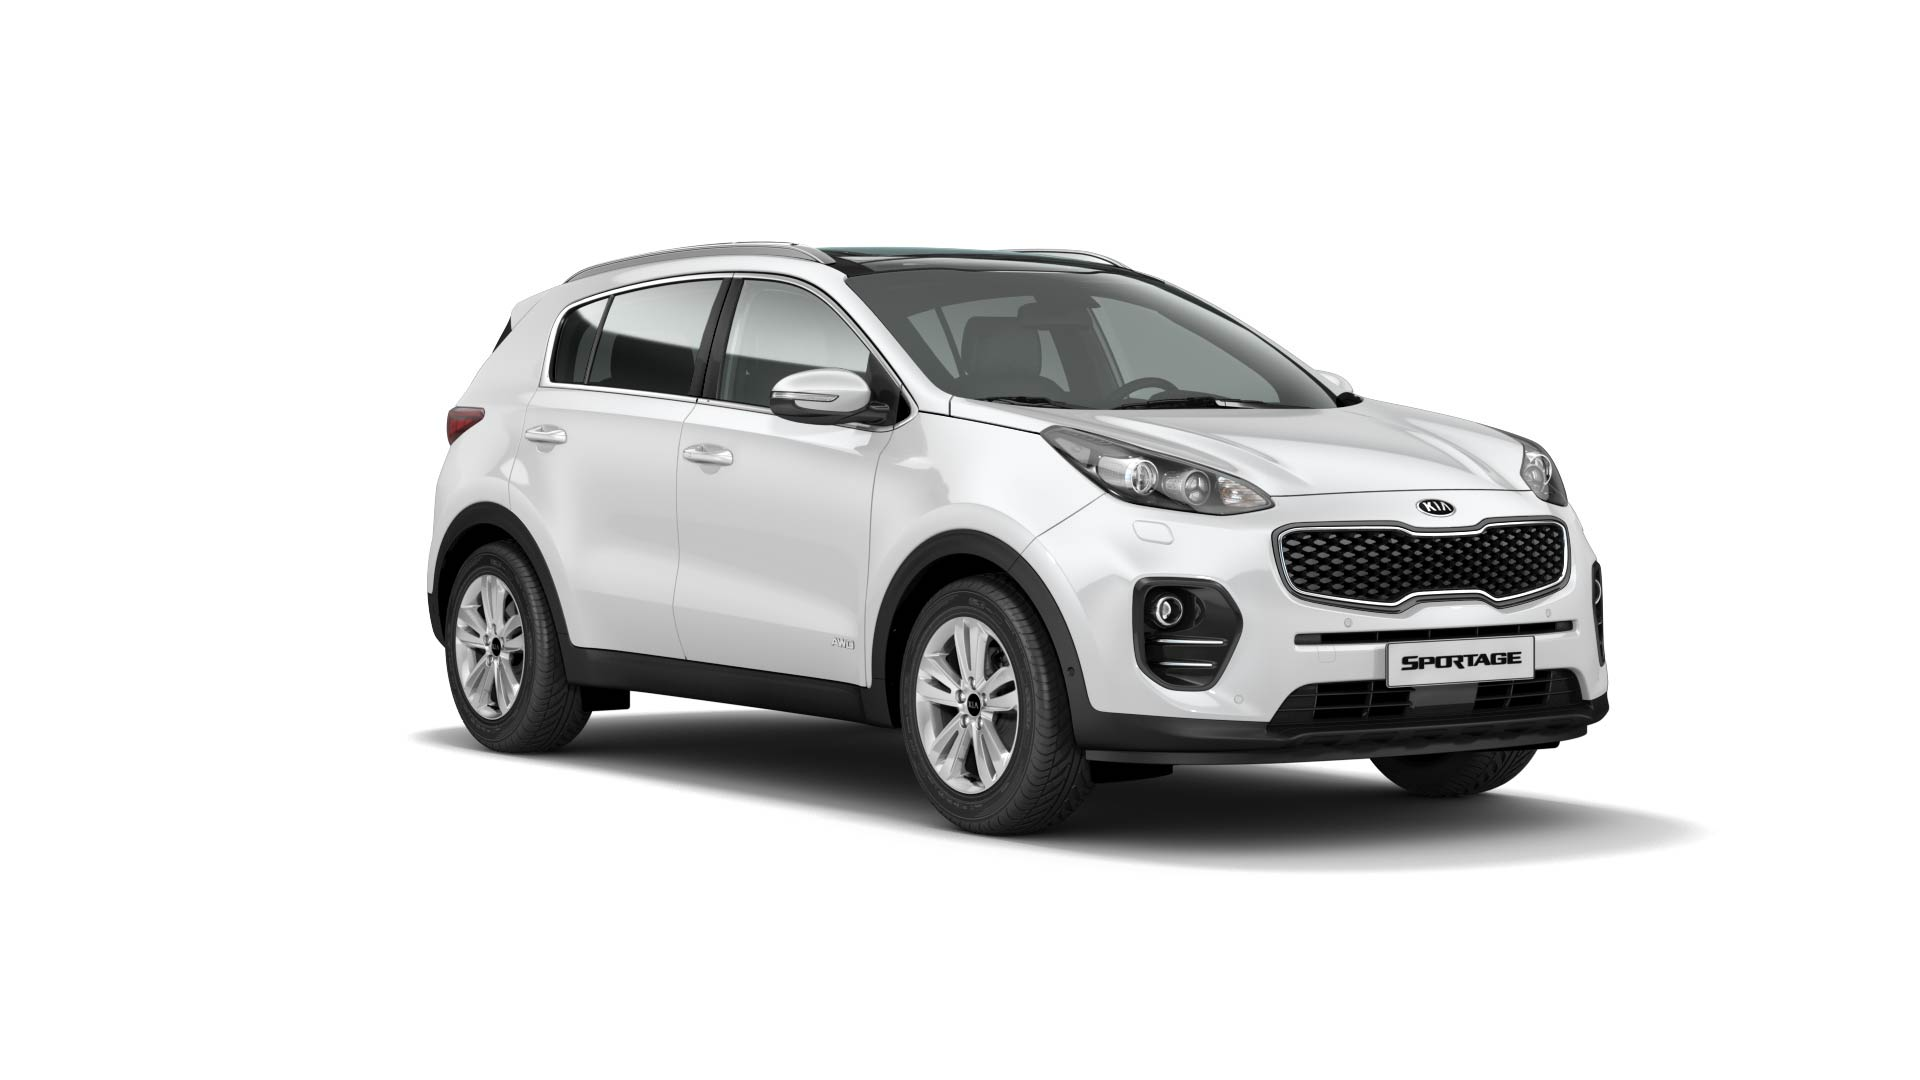 kia sportage ql style 1 7 crdi 85 kw na operativn leasing. Black Bedroom Furniture Sets. Home Design Ideas